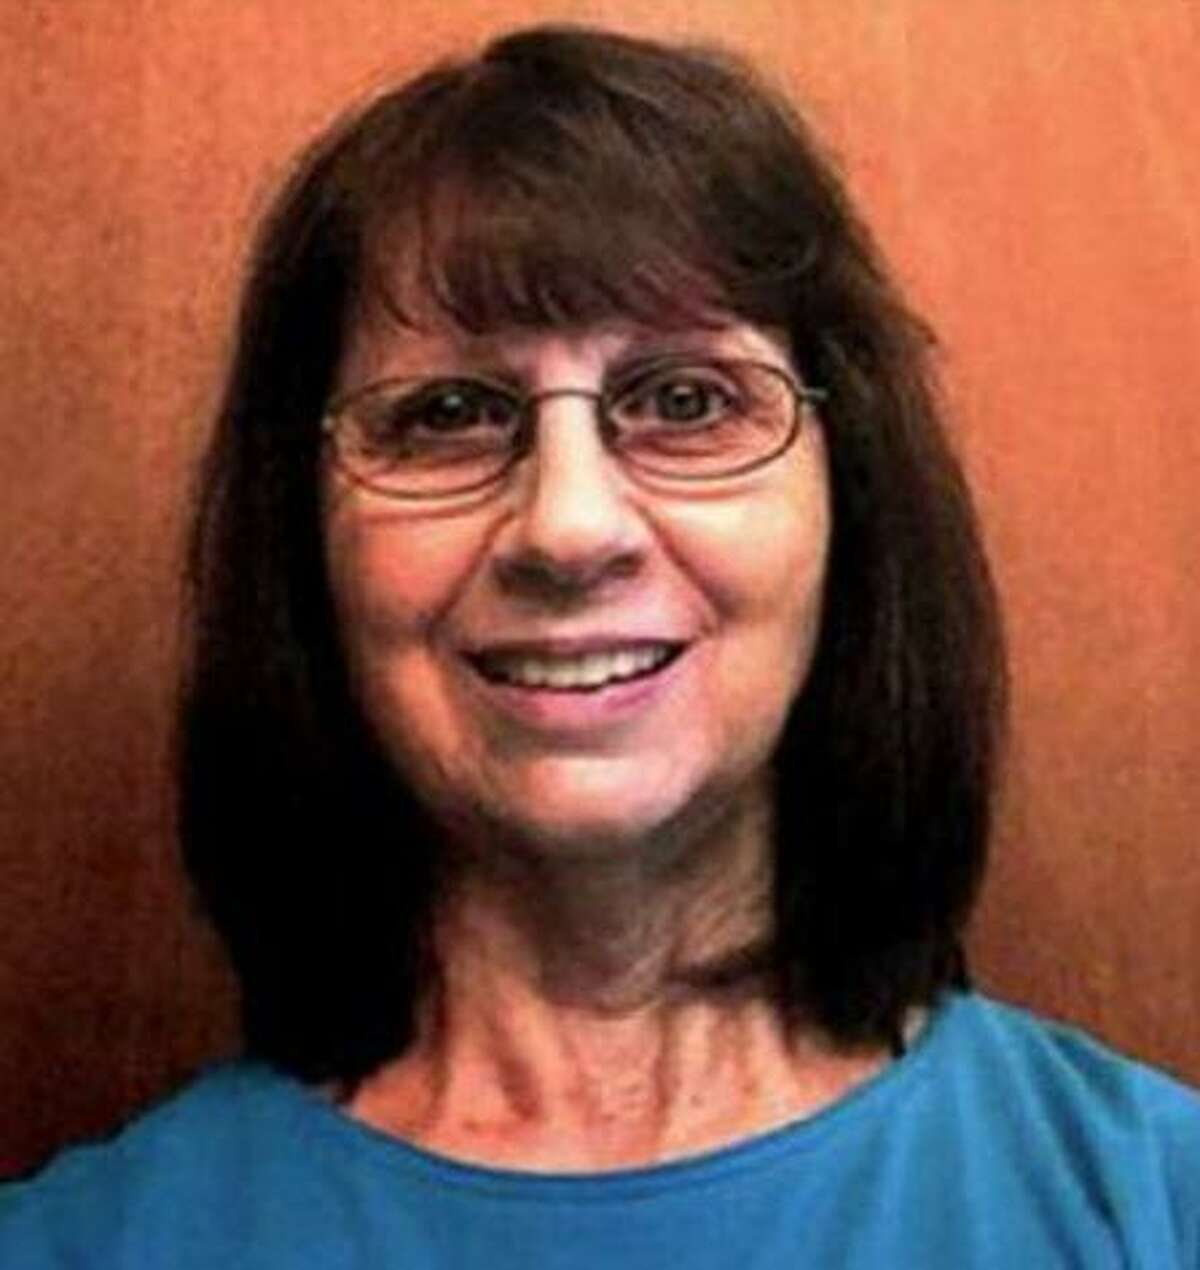 Linda Gerhardt, 72, was reported missing out of a The Woodlands hospital on Tuesday.